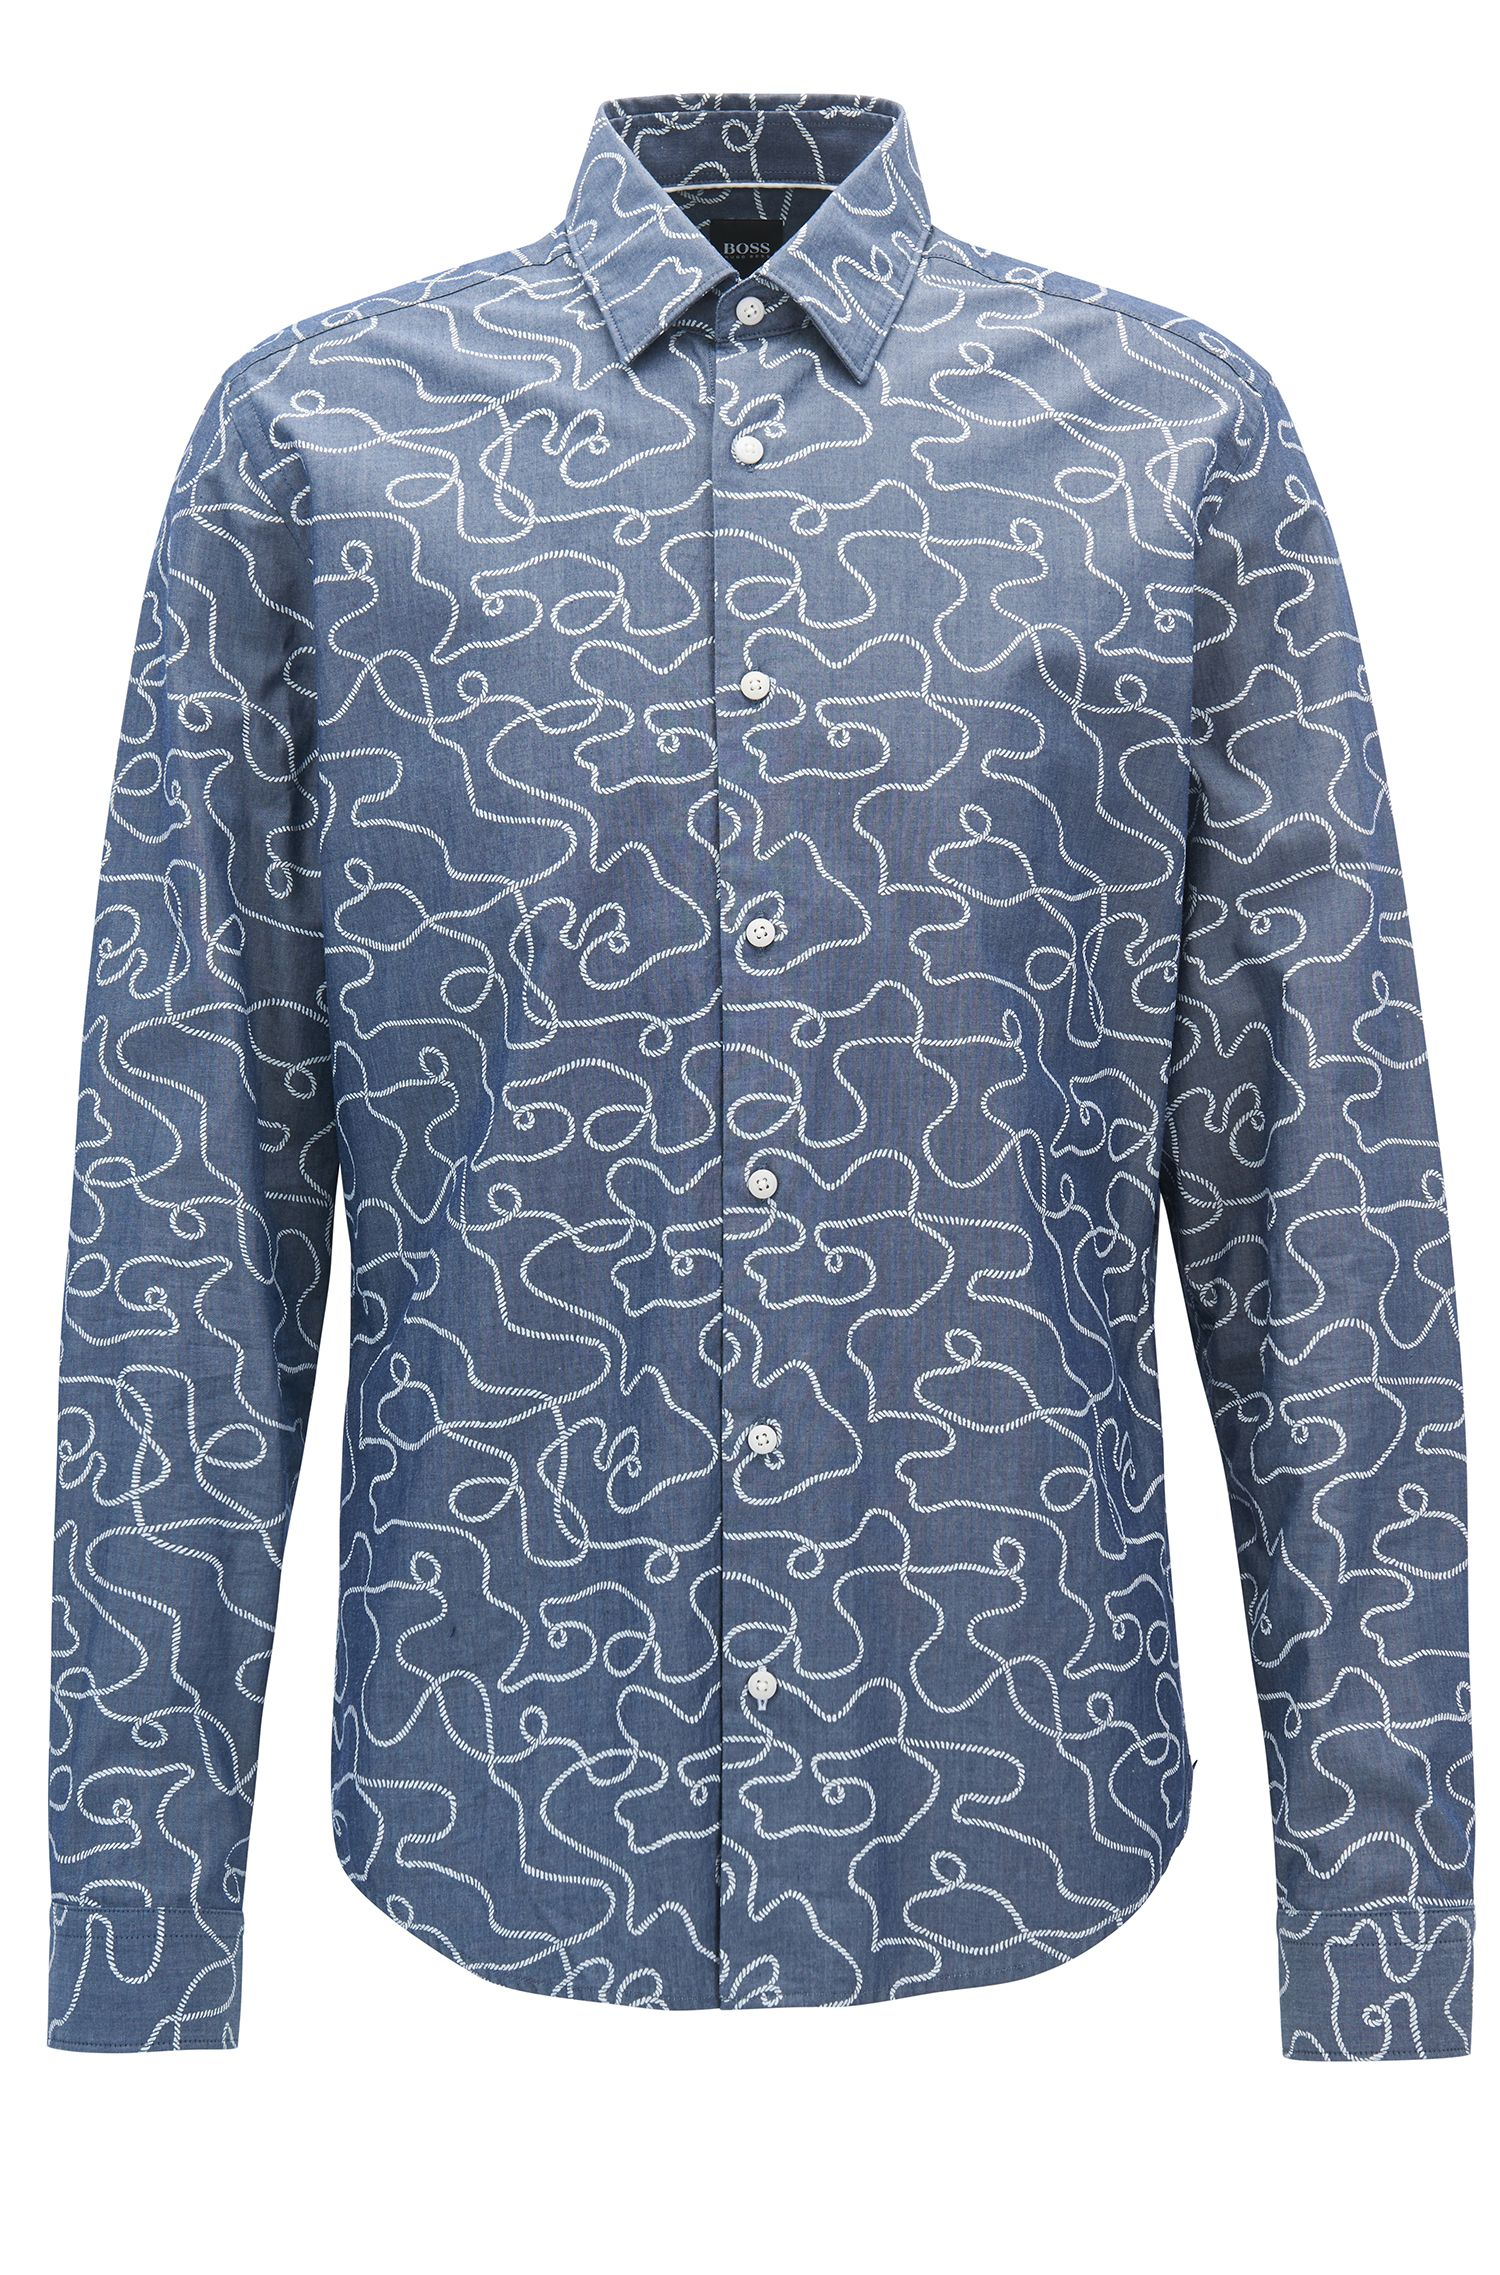 Printed-cotton shirt in a regular fit